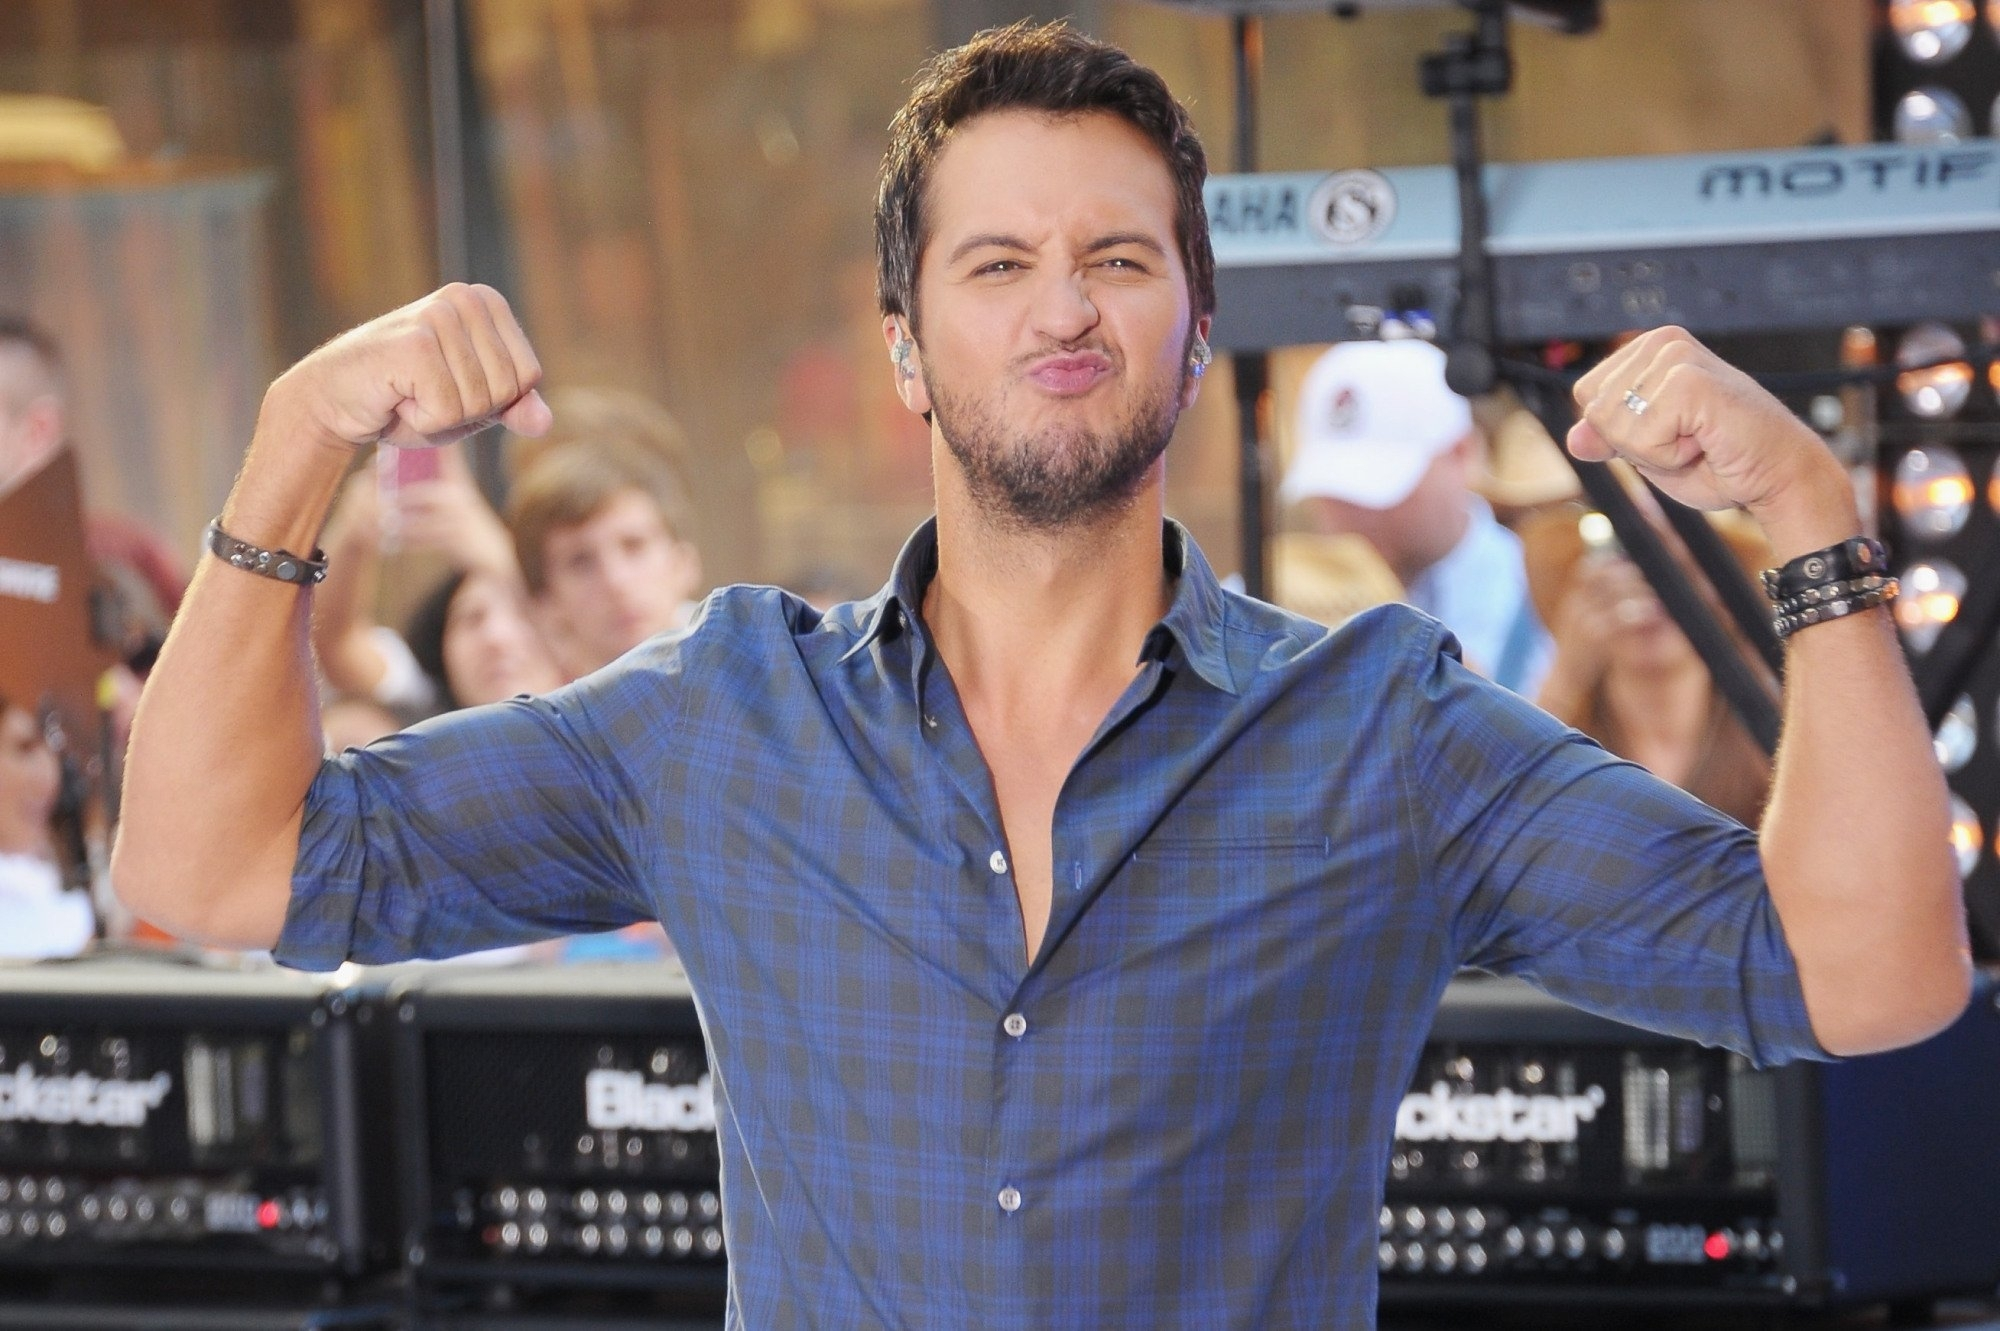 luke bryan wallpaper pictures 53671 2000x1331 px ~ hdwallsource